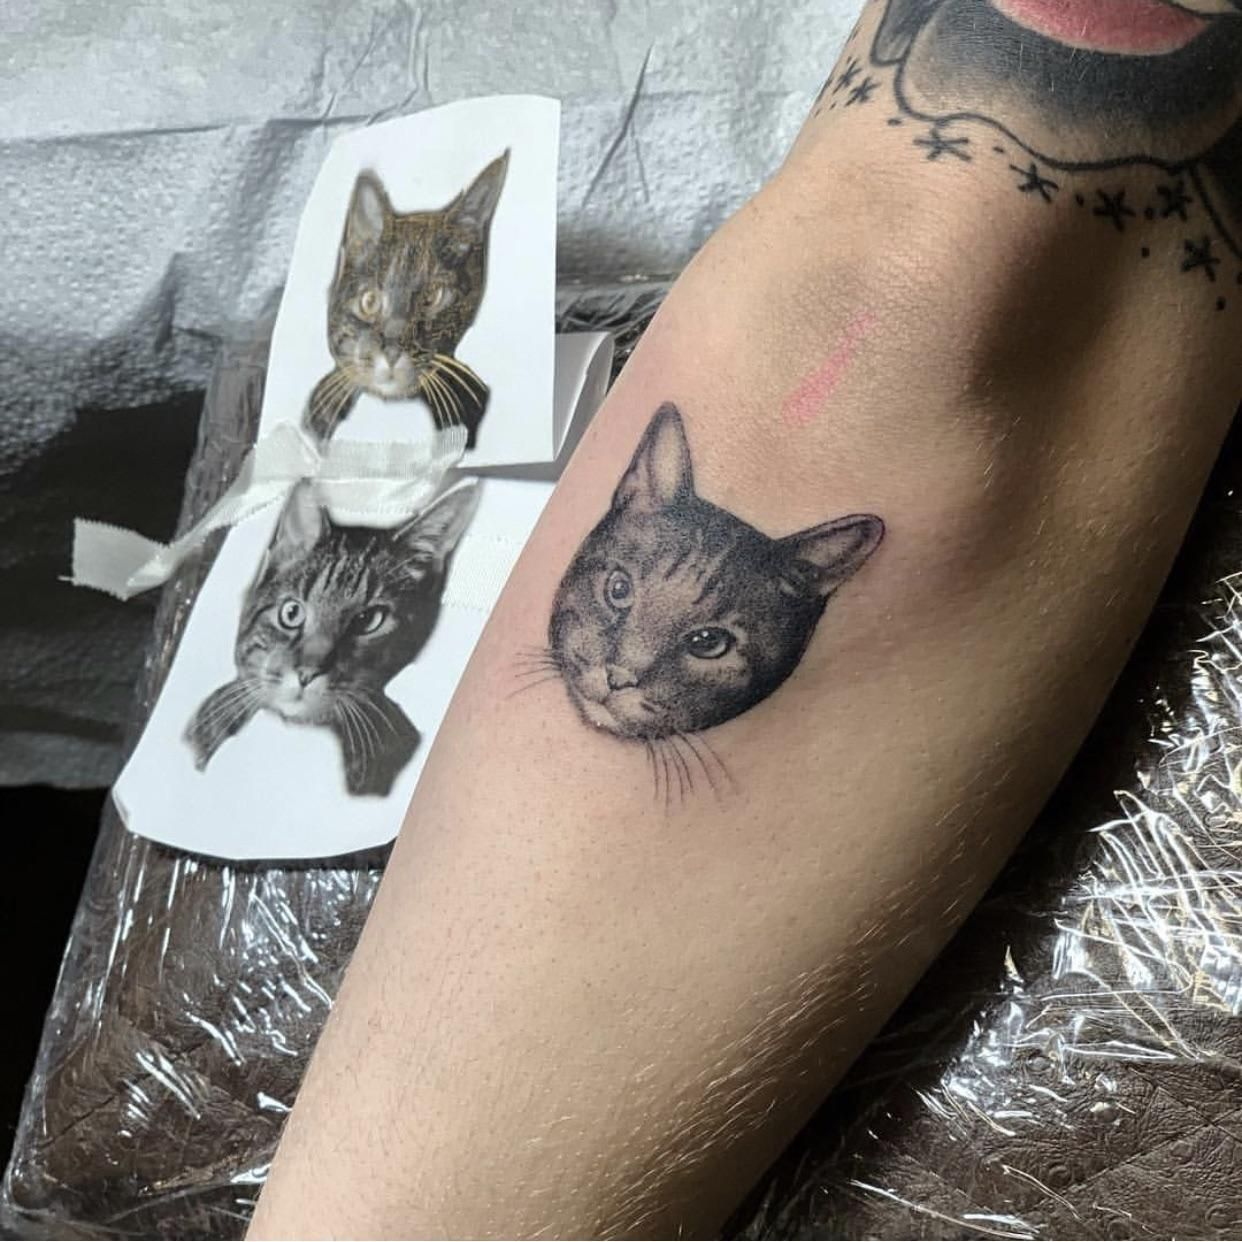 Pin By Sevienglacelle On Pets Cat Portrait Tattoos Cat Tattoo